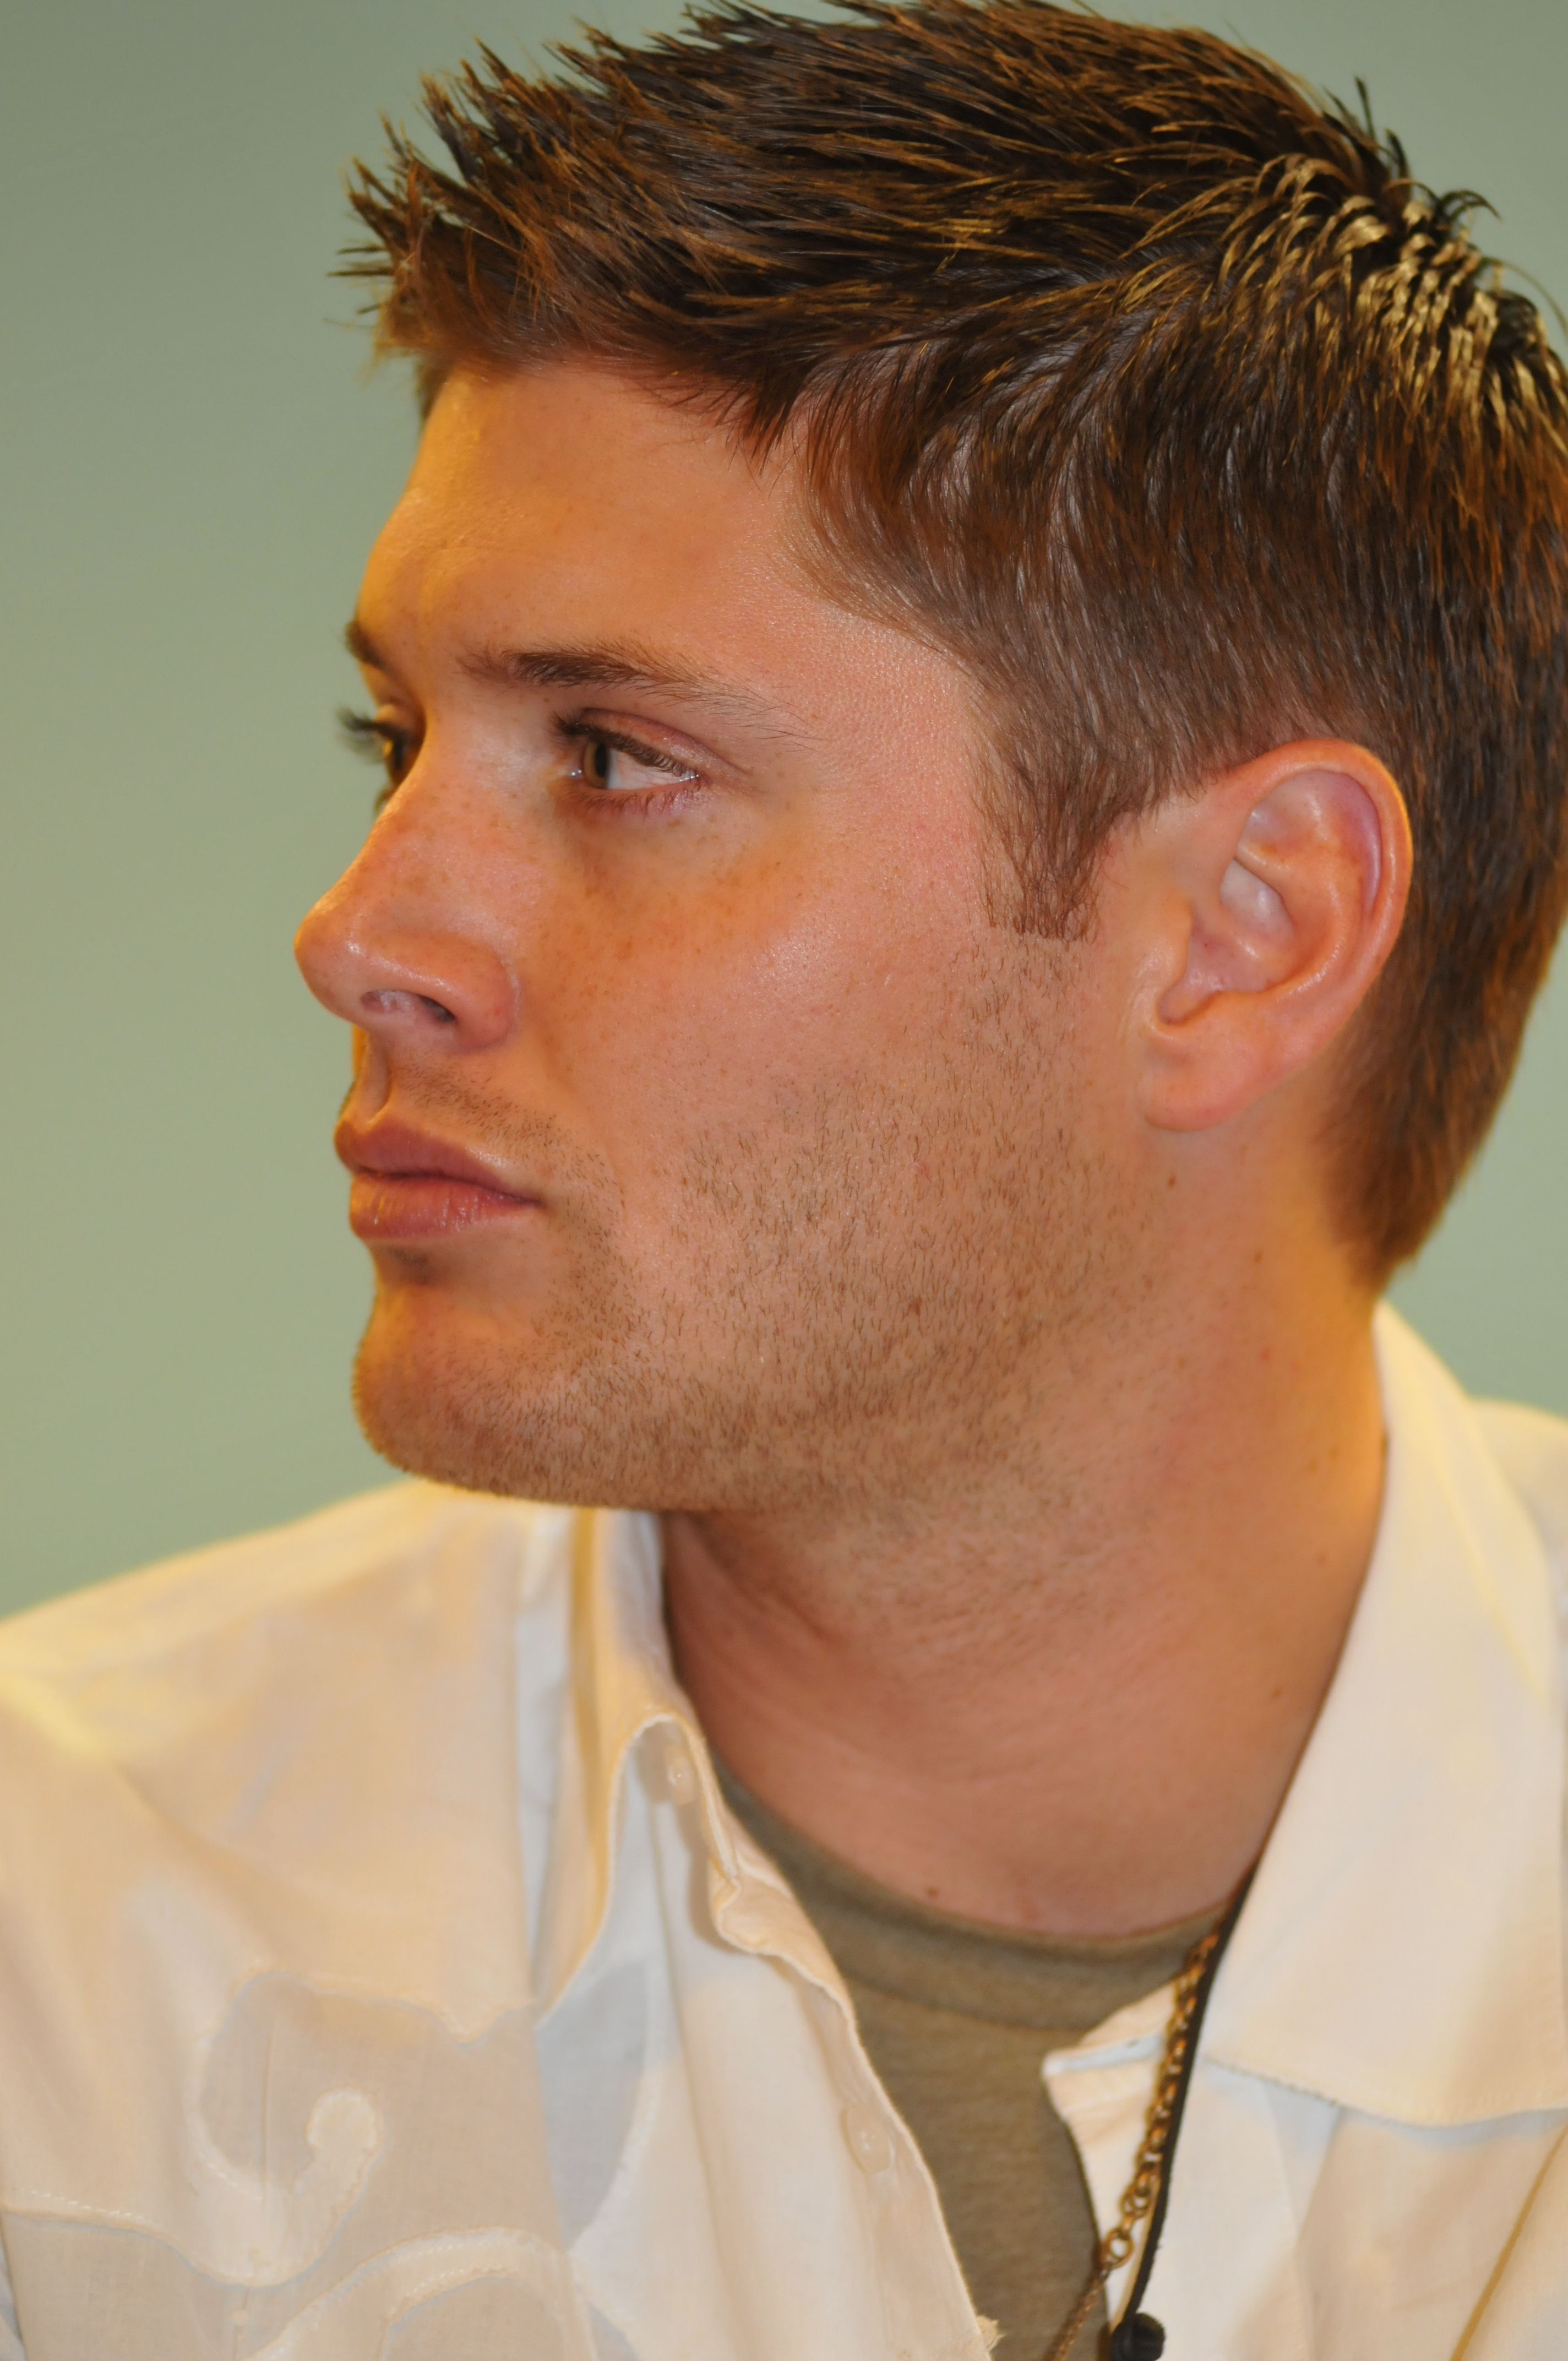 Five Awesome Things You Can Learn From Jensen Ackles Hairstyle